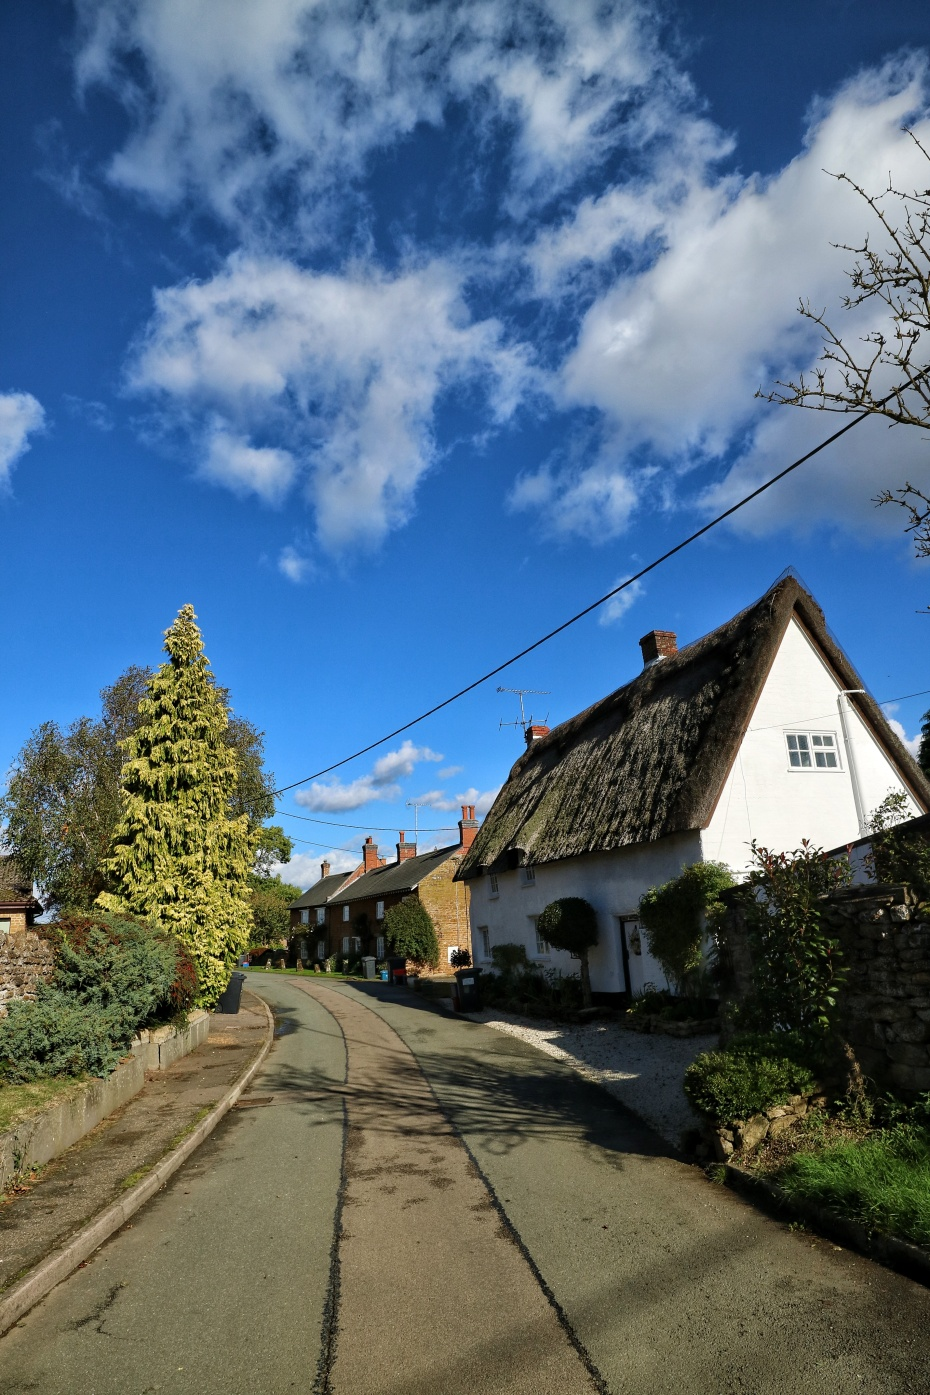 Whilton is a pretty village in Northamptonshire, nr Daventry